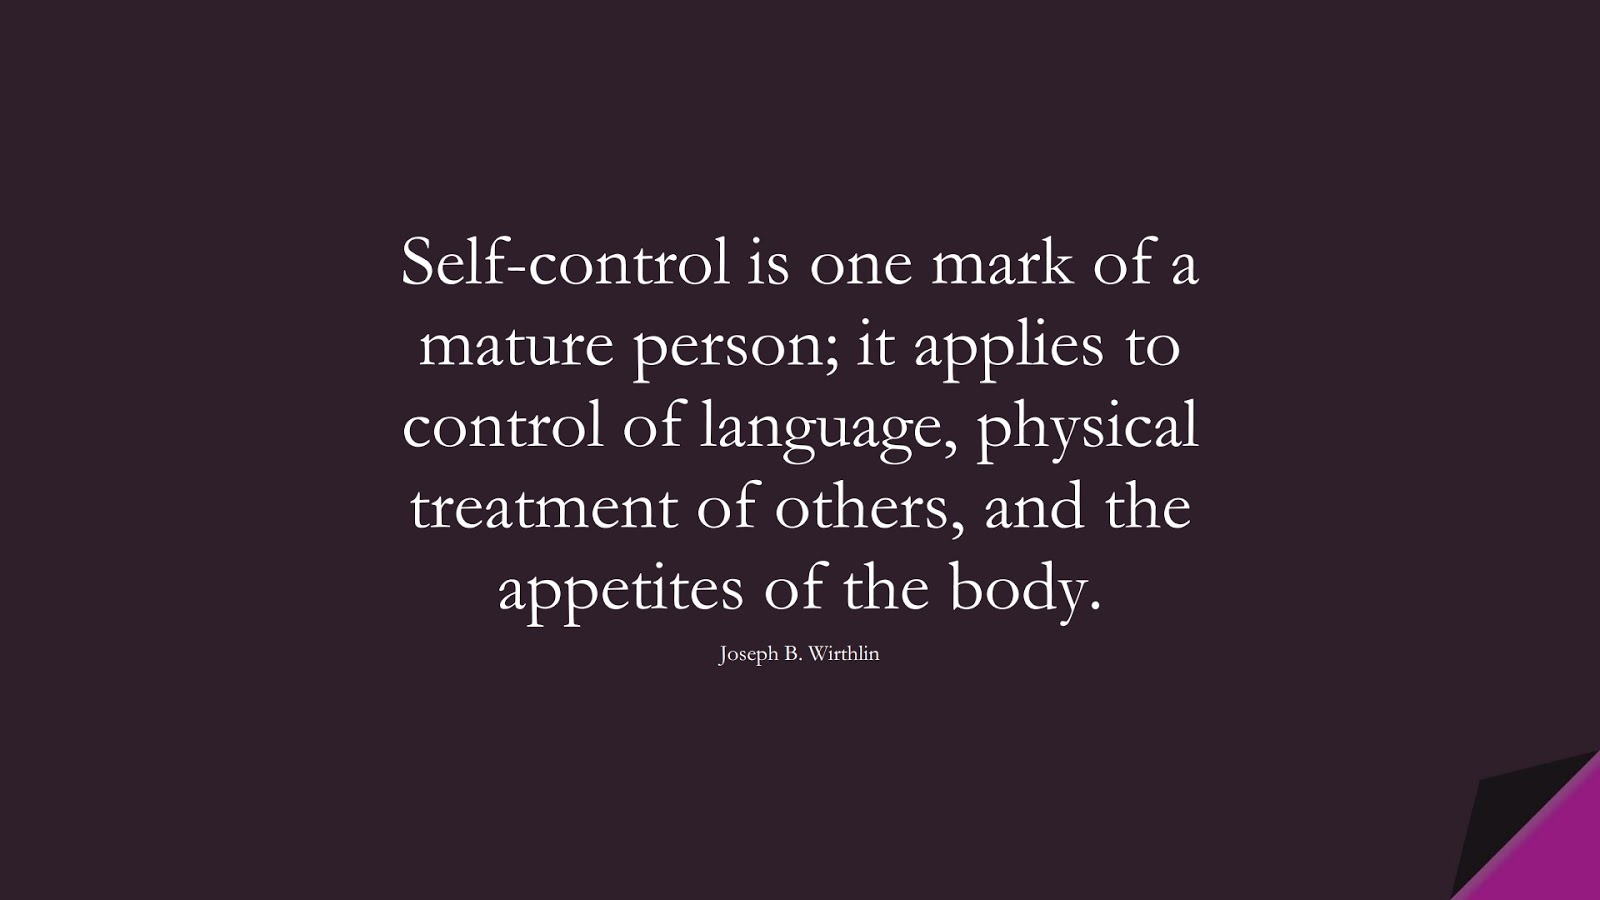 Self-control is one mark of a mature person; it applies to control of language, physical treatment of others, and the appetites of the body. (Joseph B. Wirthlin);  #CharacterQuotes